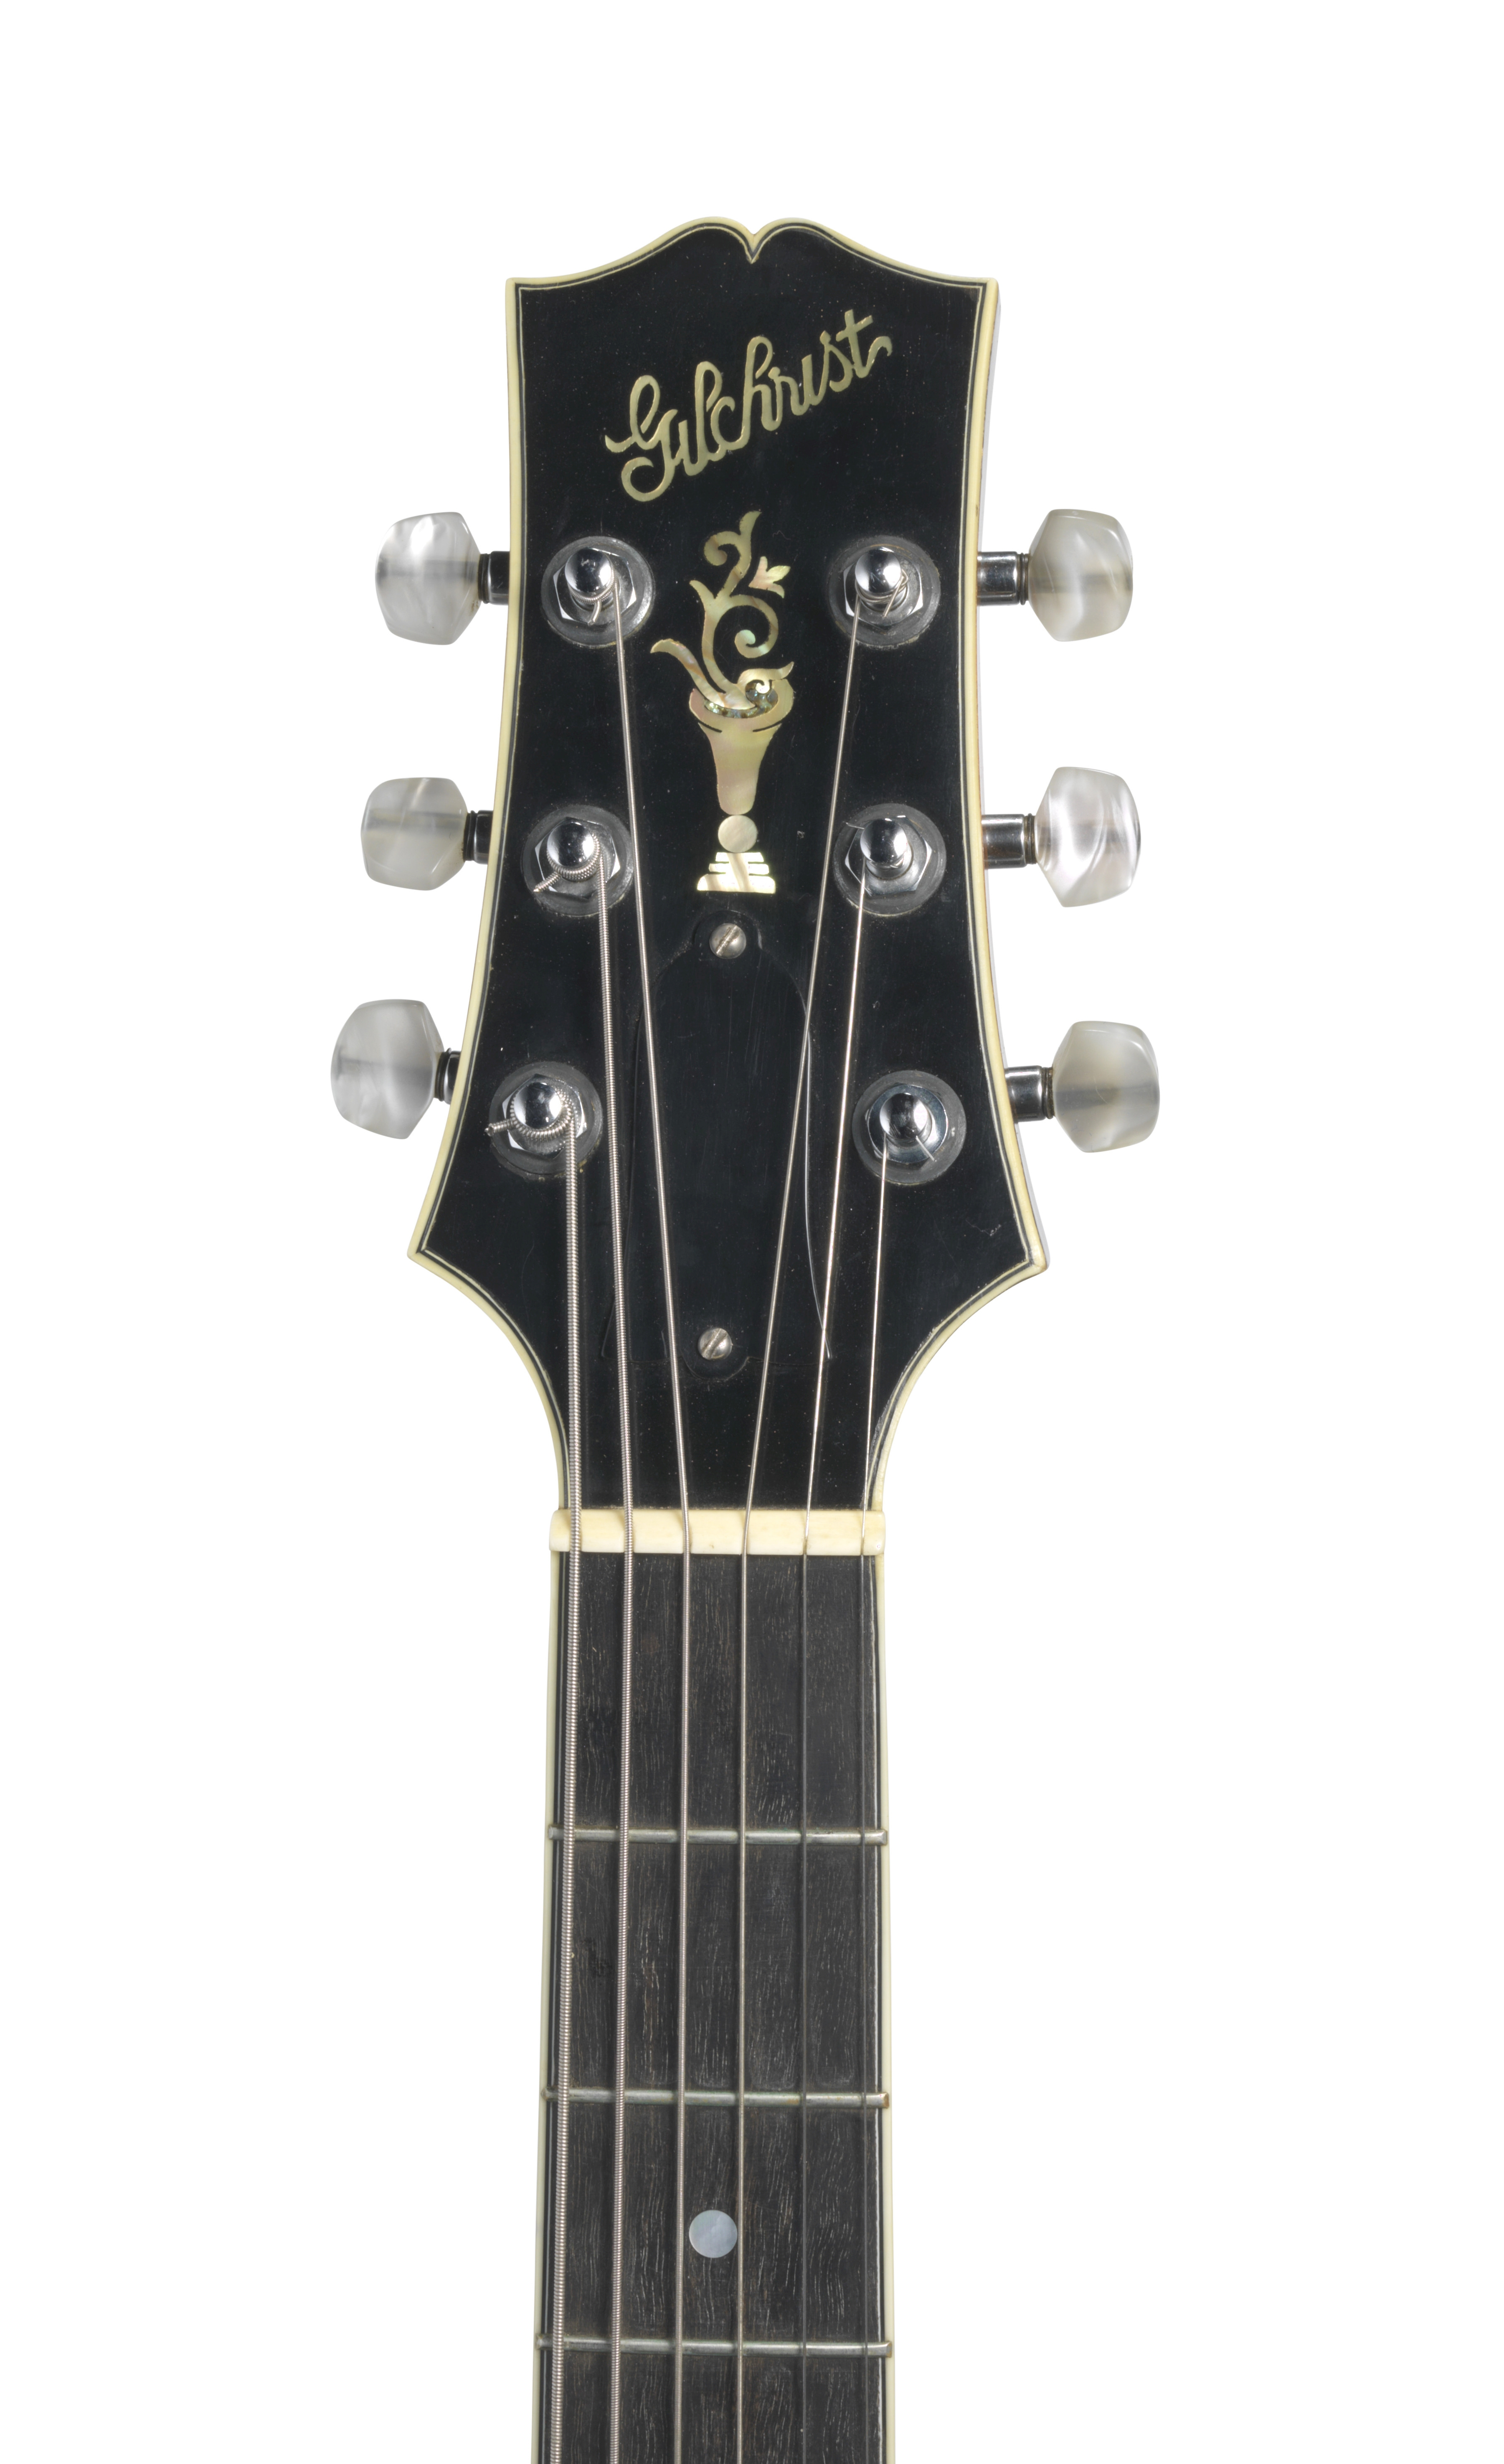 Lot 340 - A GILCHRIST L5 ARCHTOP ACOUSTIC GUITAR OWNED AND PLAYED BY JERRY GARCIA